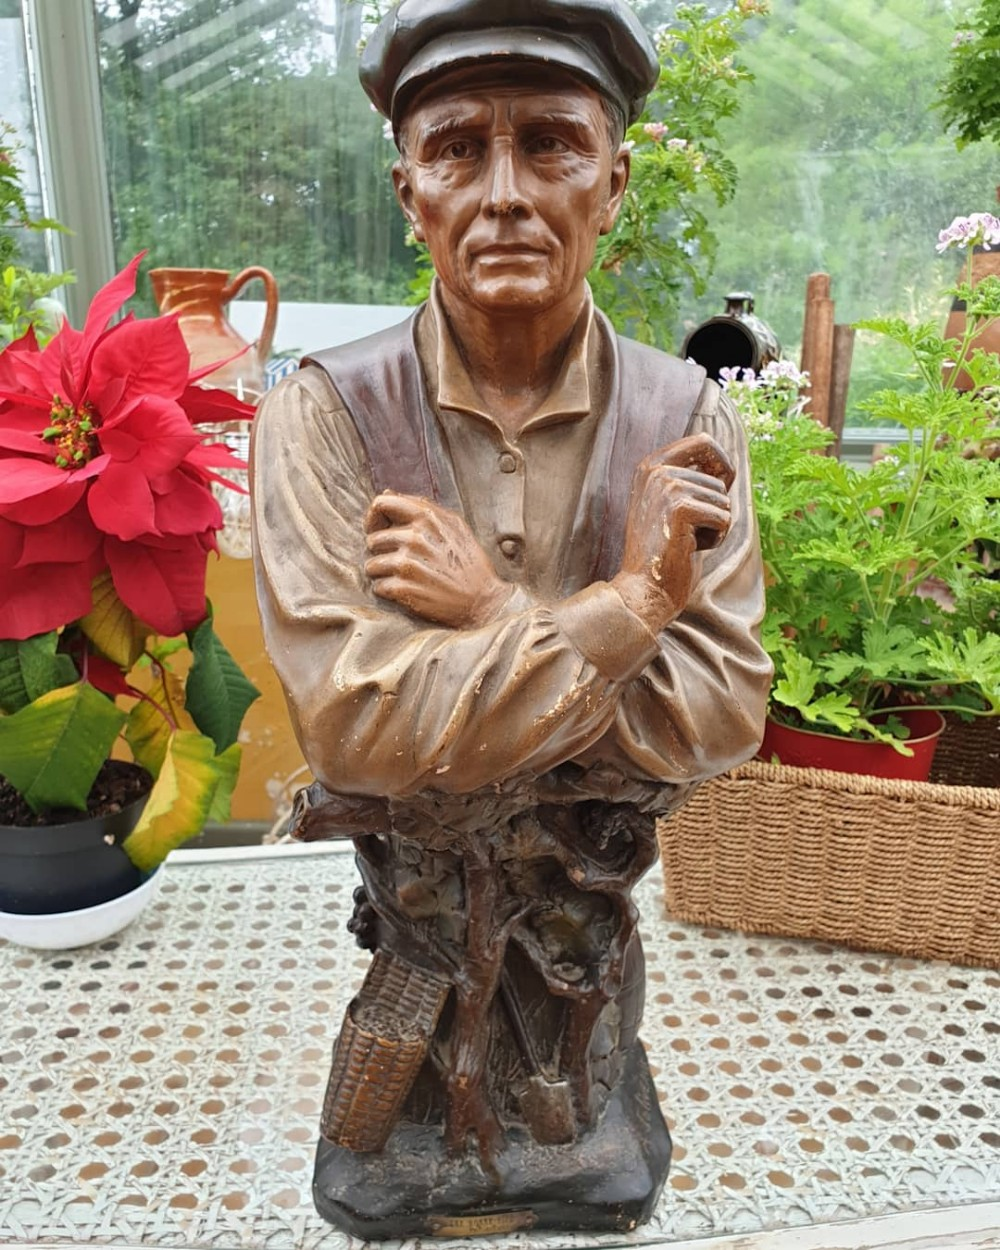 superb 19thc terracotta figure of the woodman by